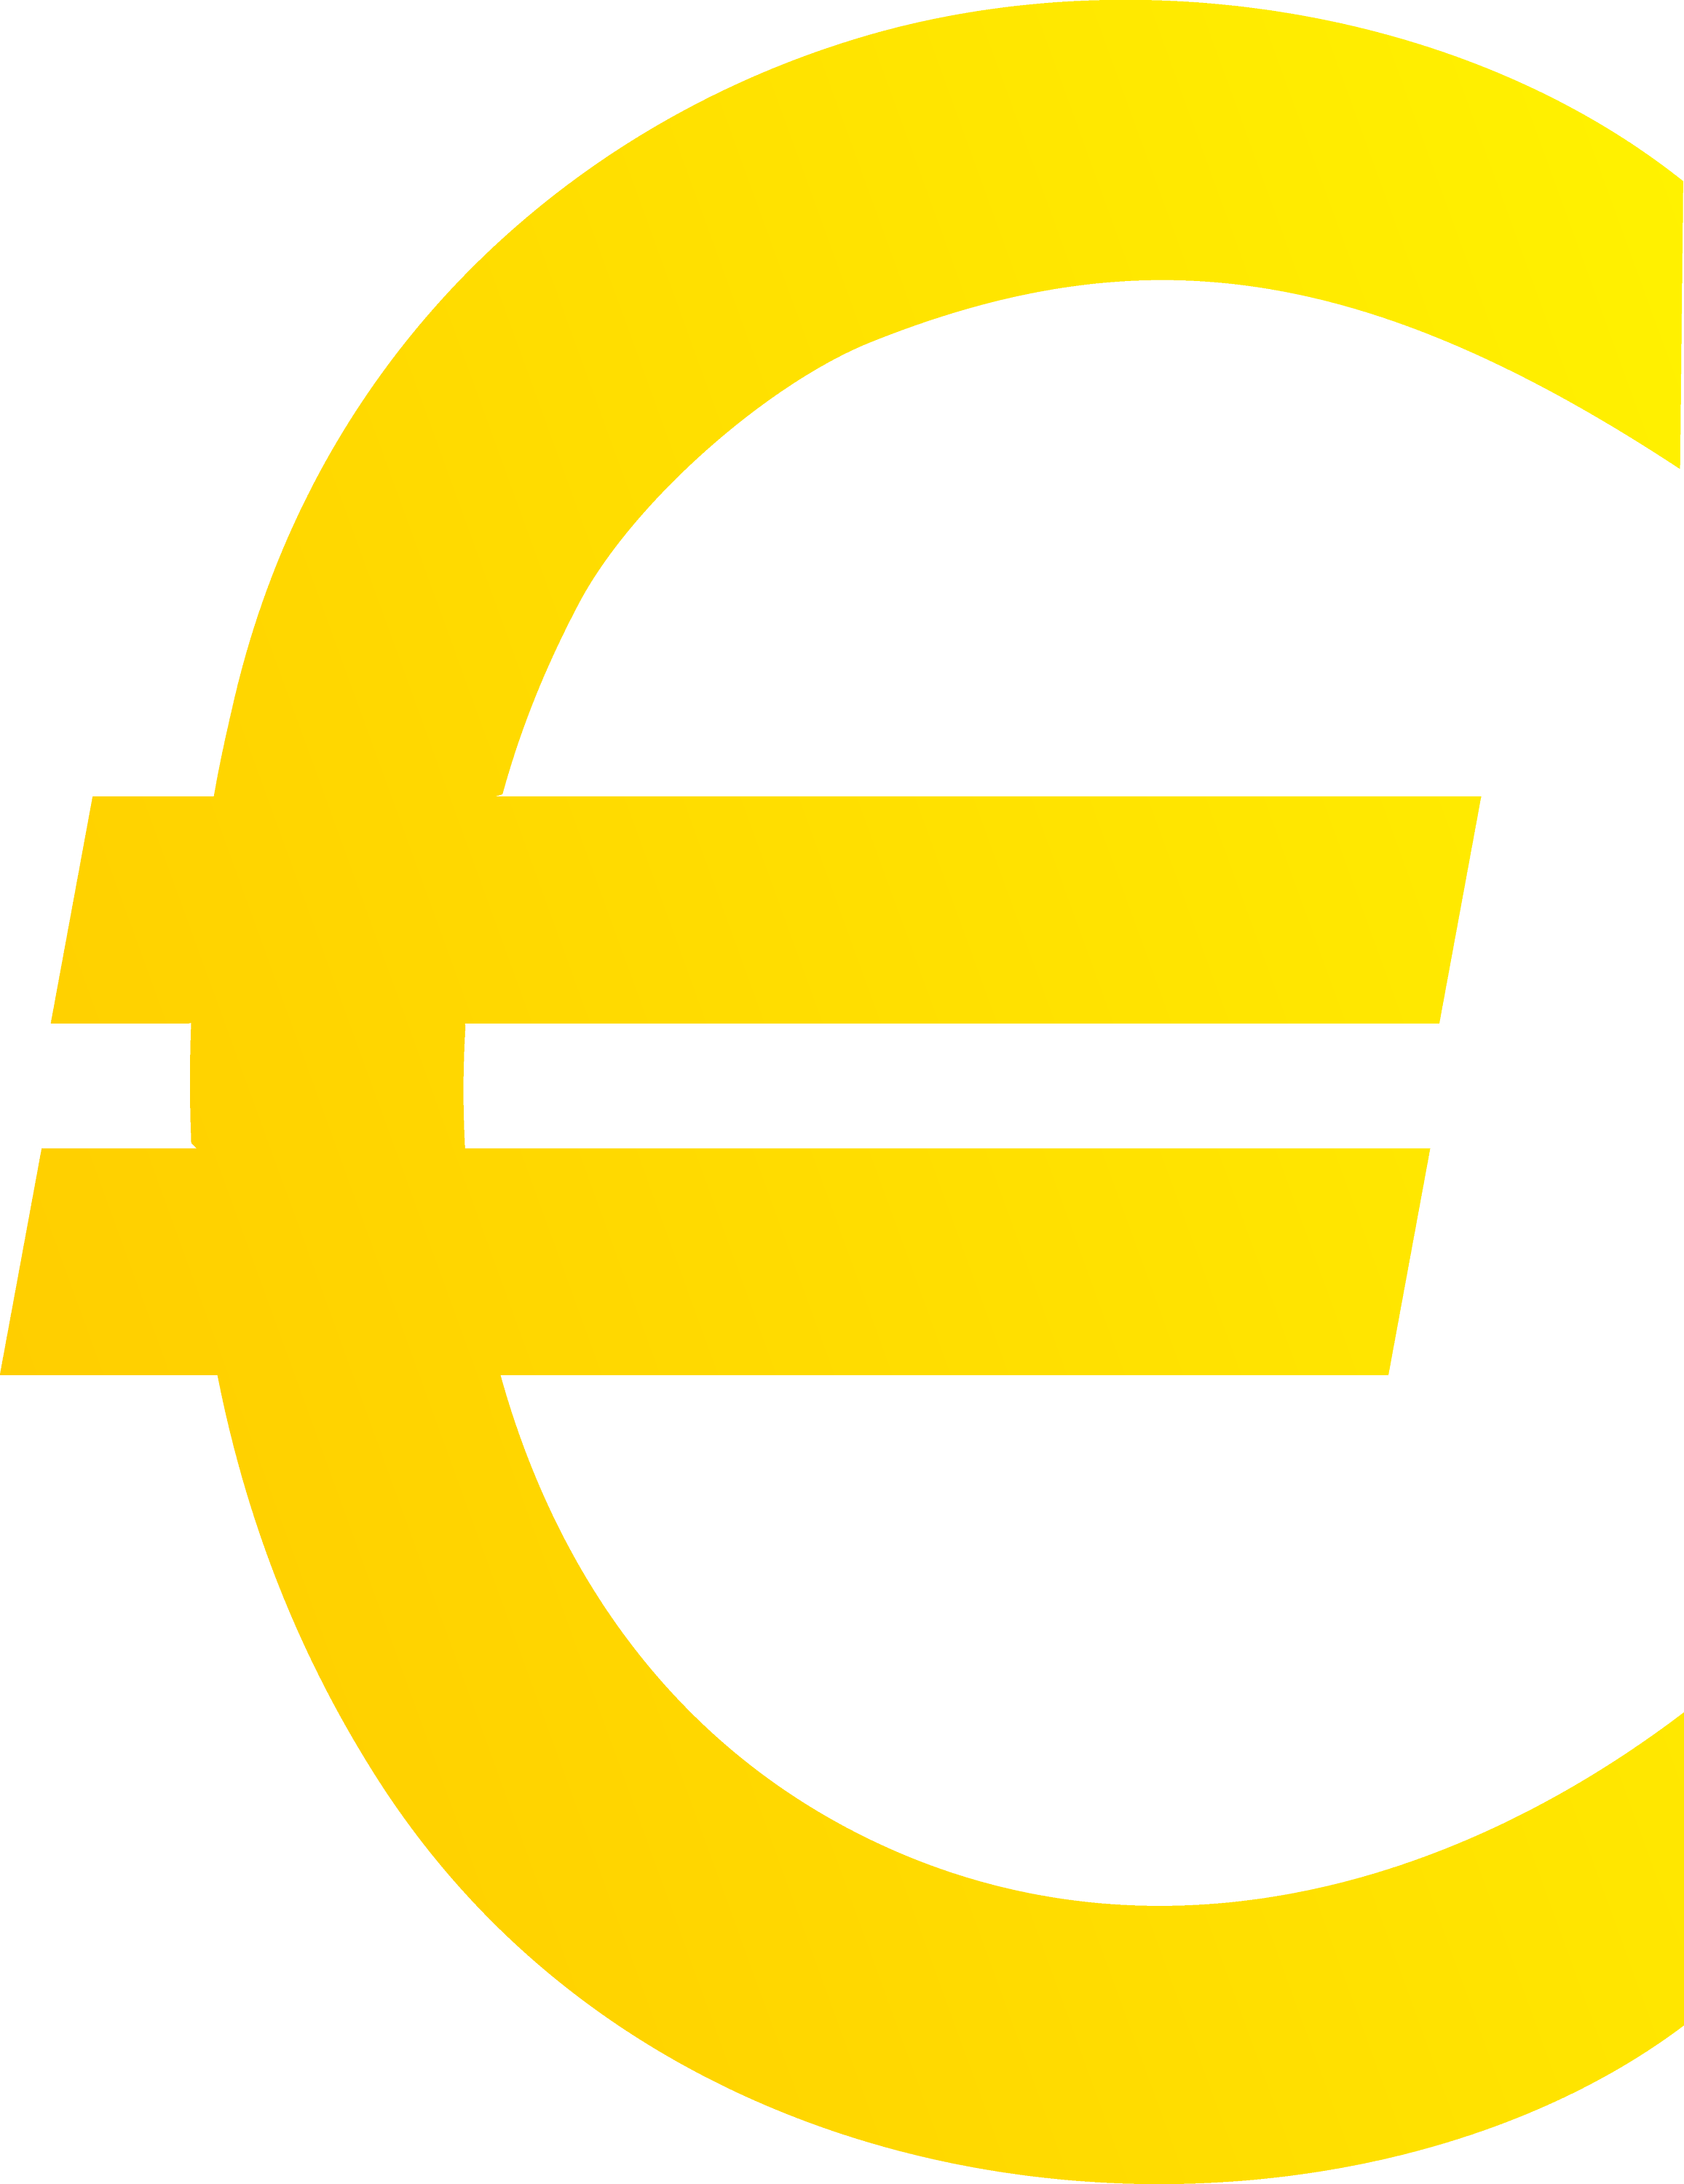 free clipart euro sign - photo #1